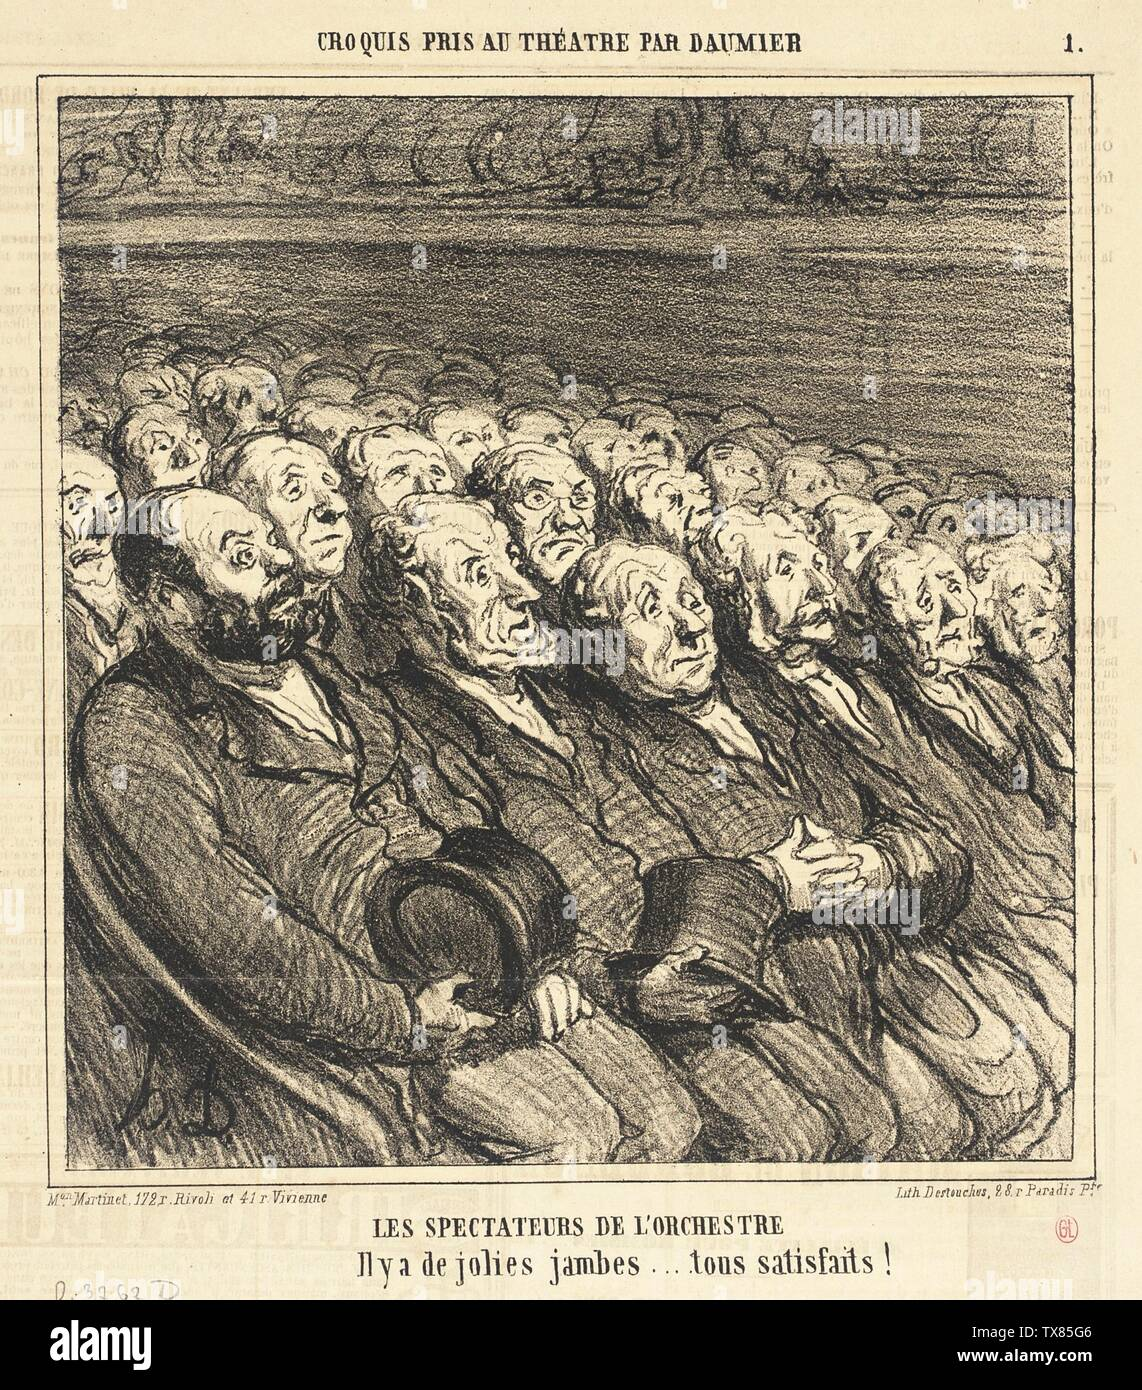 'Les Spectateurs de l'orchestre; English:  France, 1864 Series: Croquis pris au théâtre Periodical: Le Charivari, 9 April 1864 Prints; lithographs Lithograph Sheet: 9 x 8 1/2 in. (22.86 x 21.59 cm) Gift of Mrs. Florence Victor from The David and Florence Victor Collection (M.91.82.315) Prints and Drawings; 1864date QS:P571,+1864-00-00T00:00:00Z/9; ' - Stock Image